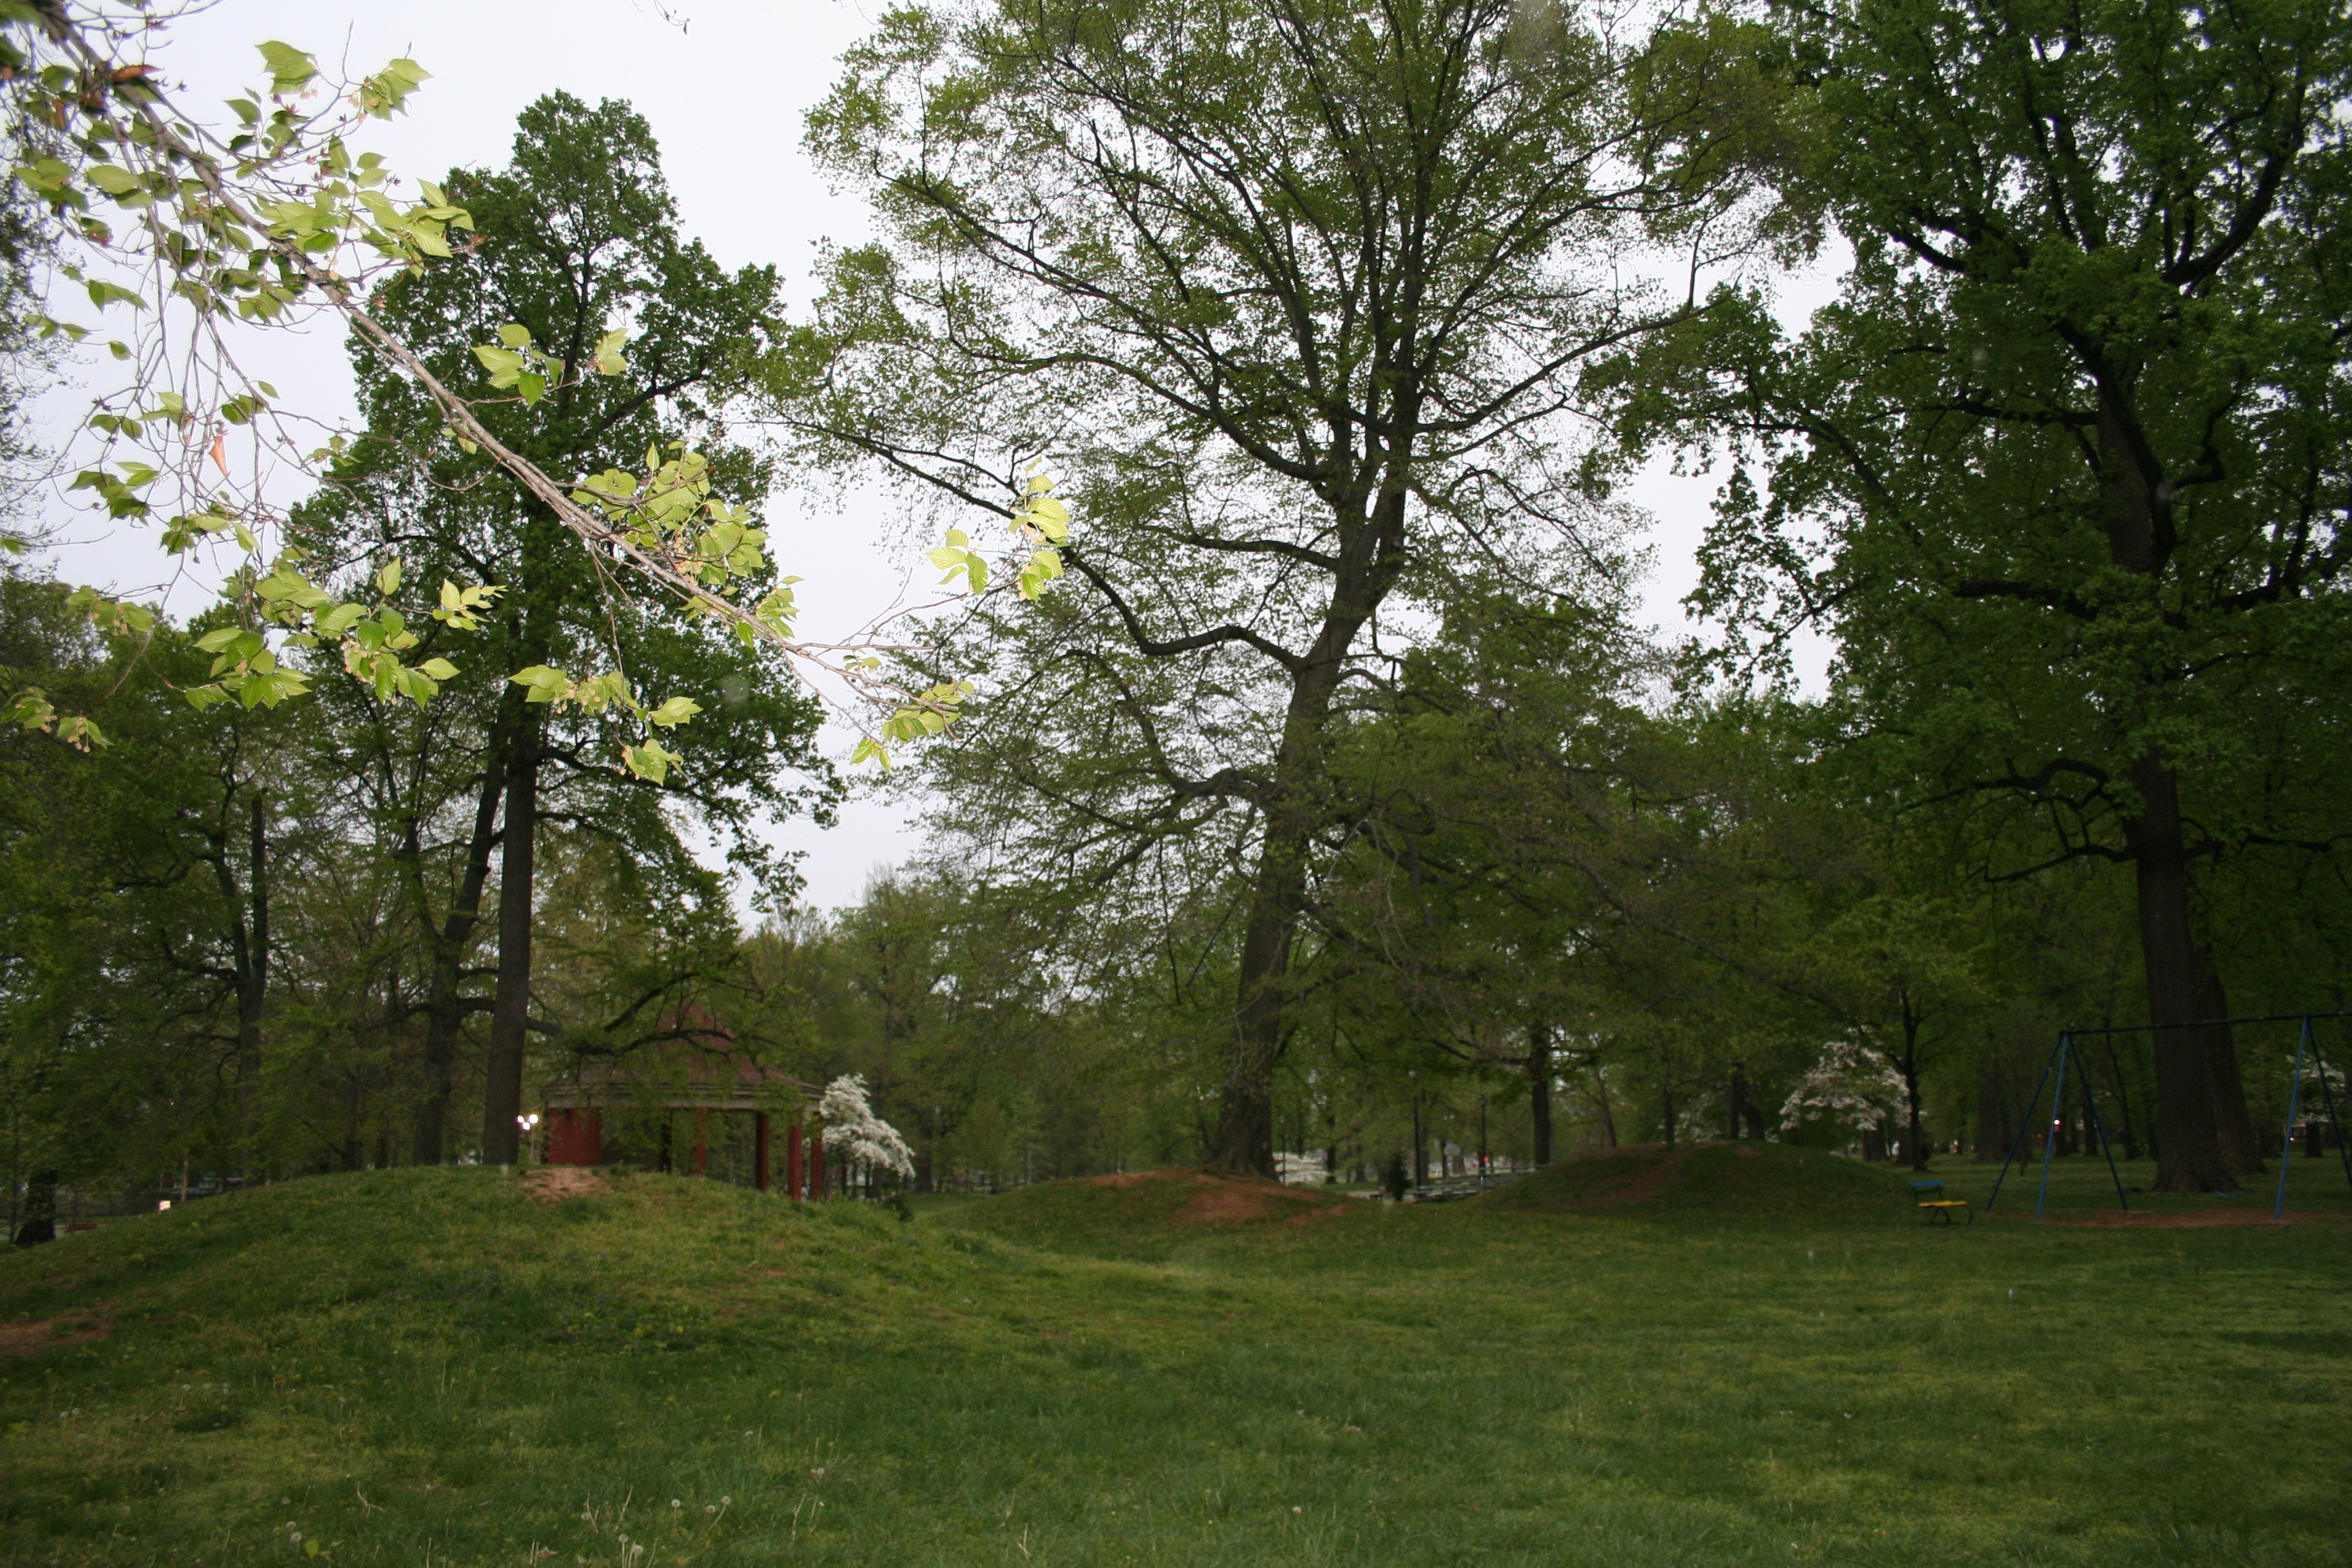 Photo of the Adena mounds in Ashland Central Park.